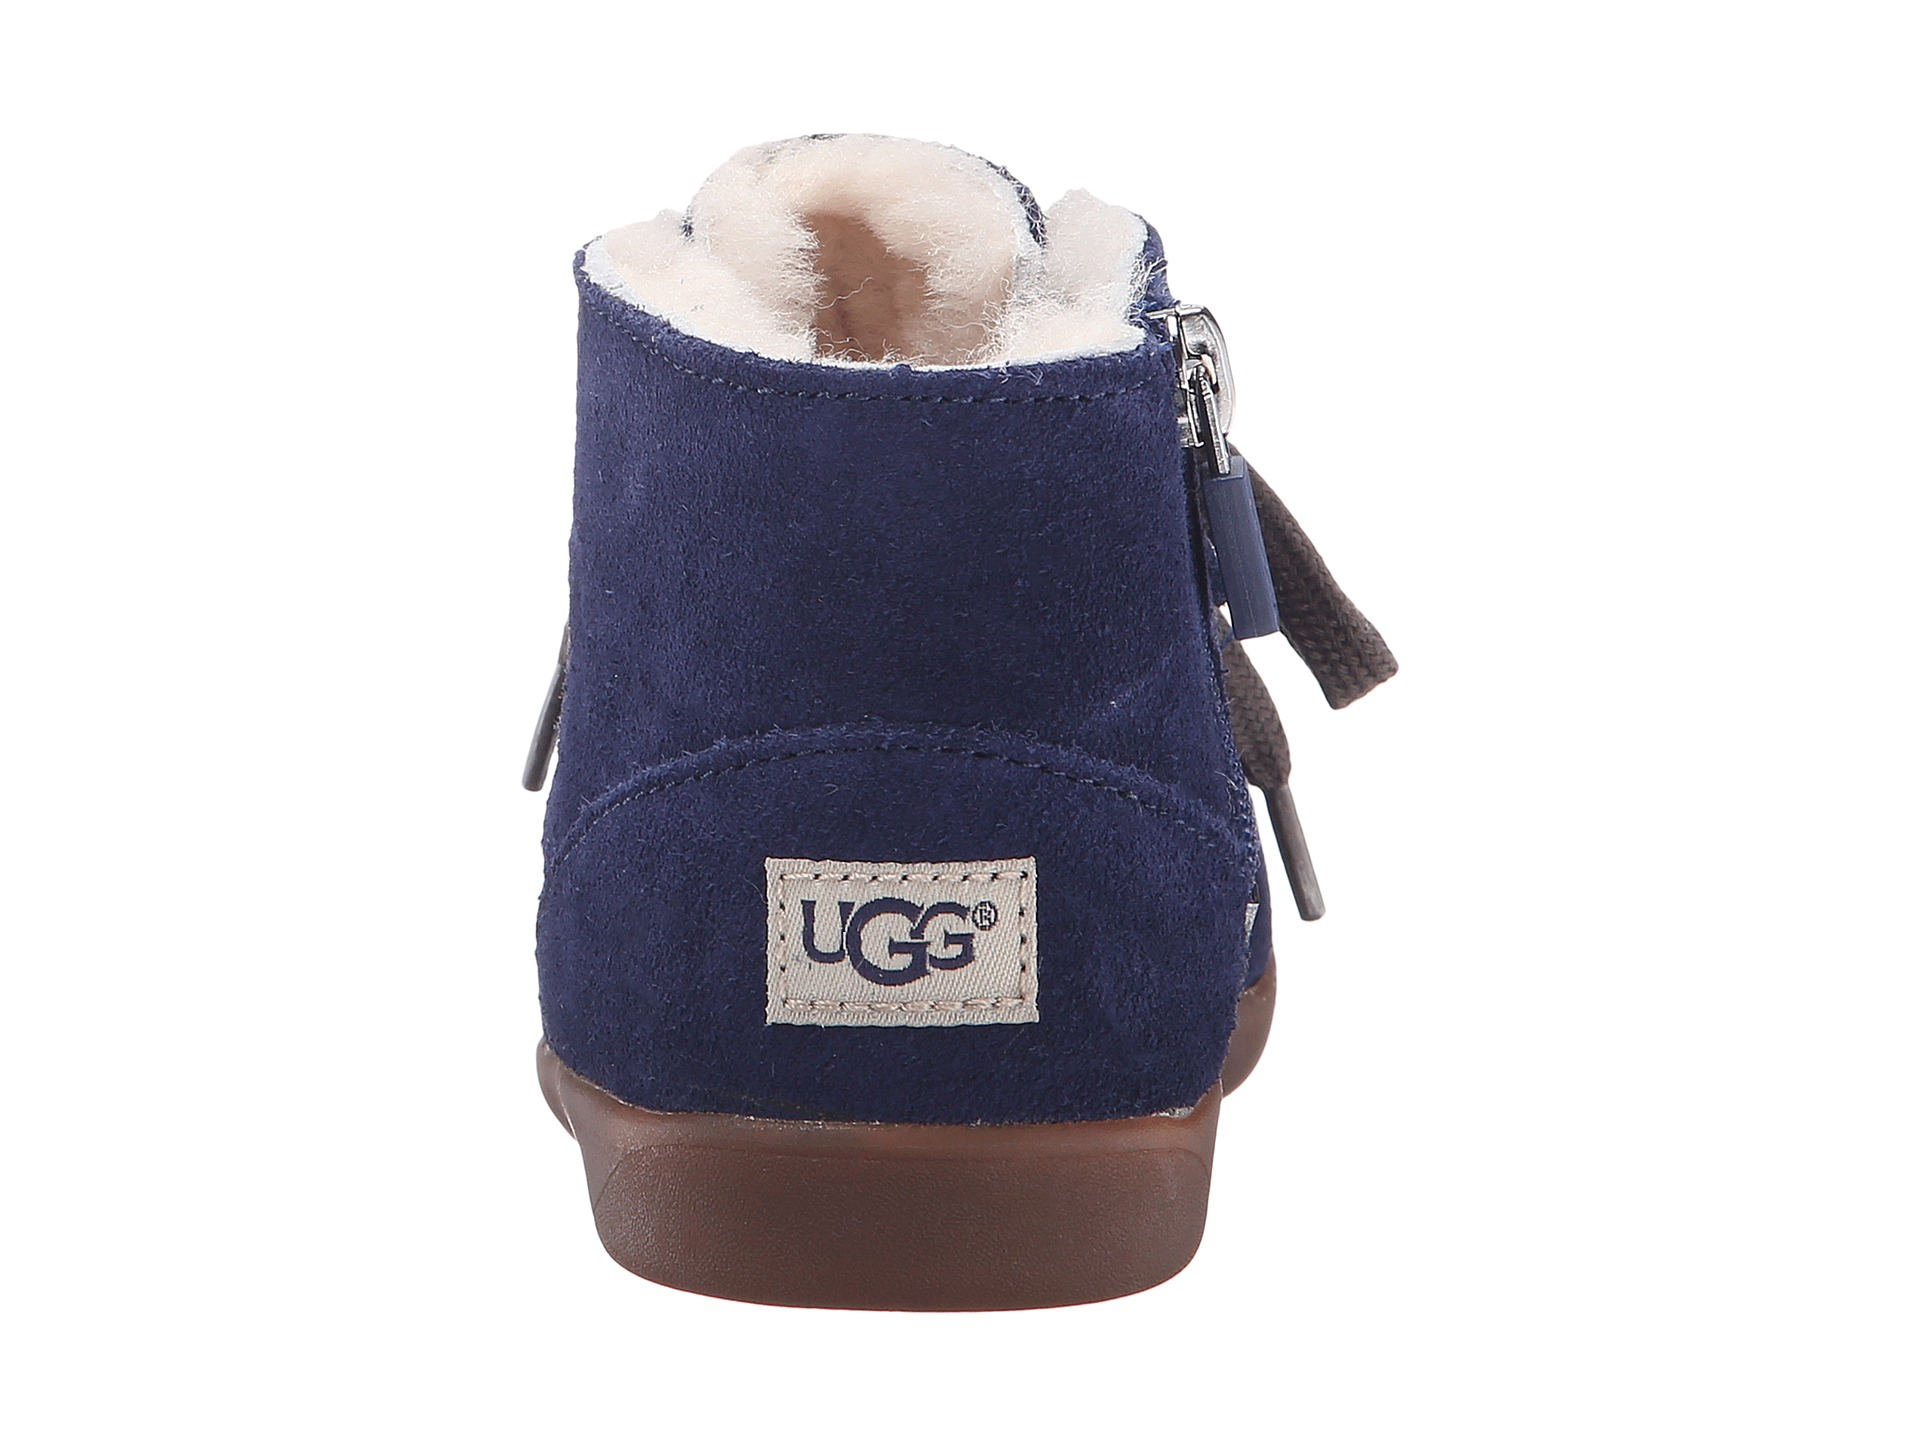 Us Shoe Size Conversion Ugg Boots